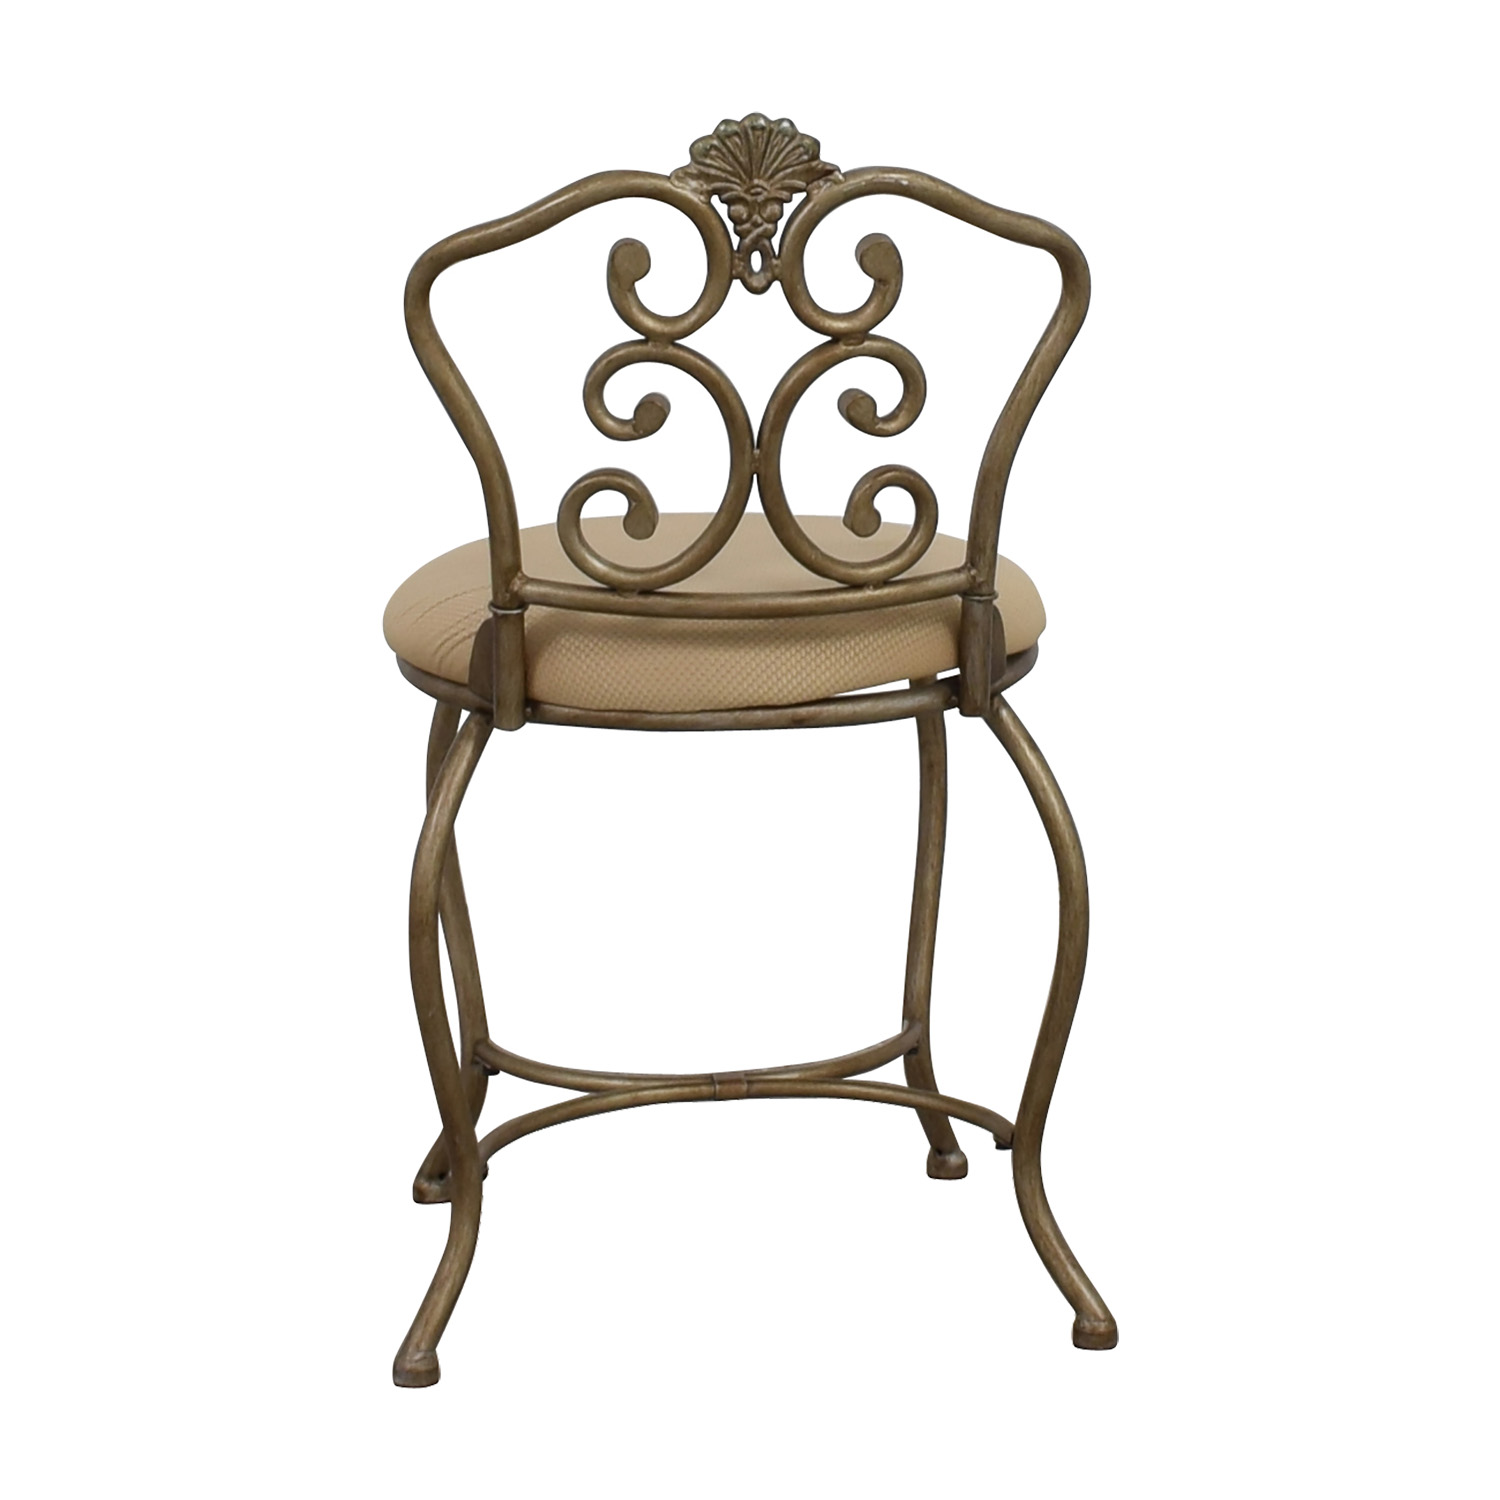 Tan Seat with Silver Frame Chair coupon